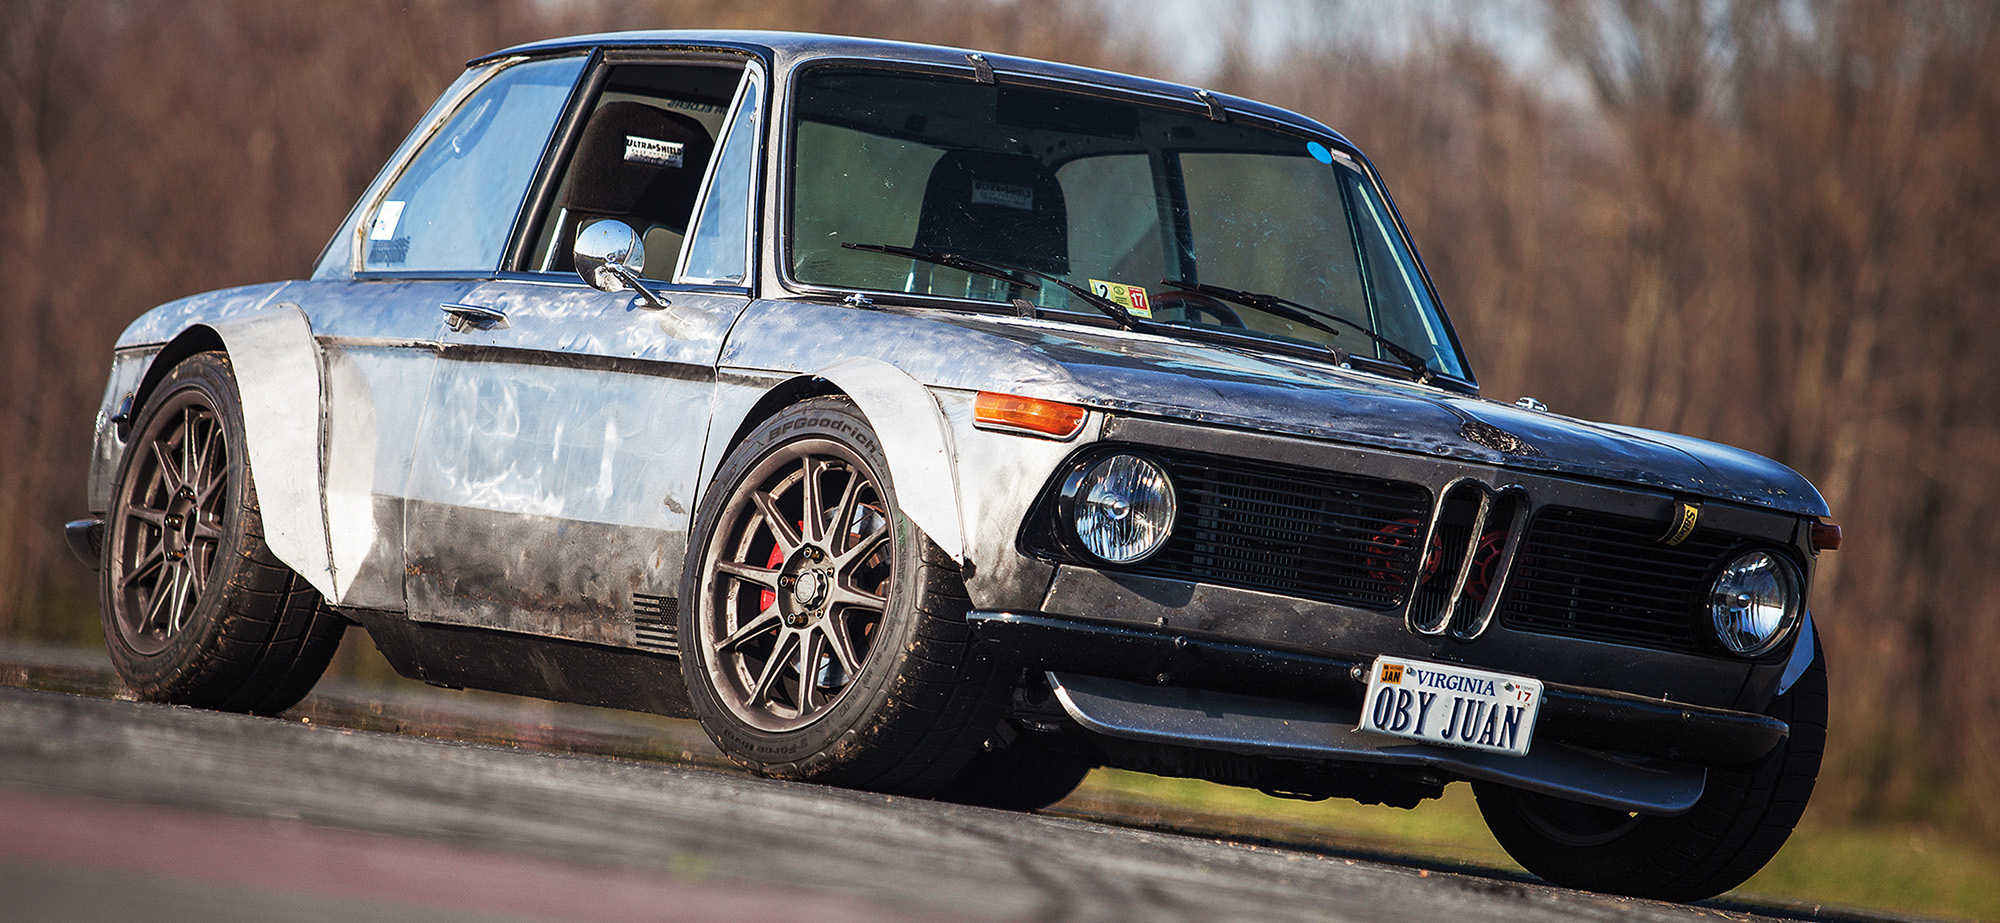 The Beast of Both Worlds: A Guy In His 20's Built A BMW 2002 With The Heart And Bones Of A Honda S2000, And It's Nuts!